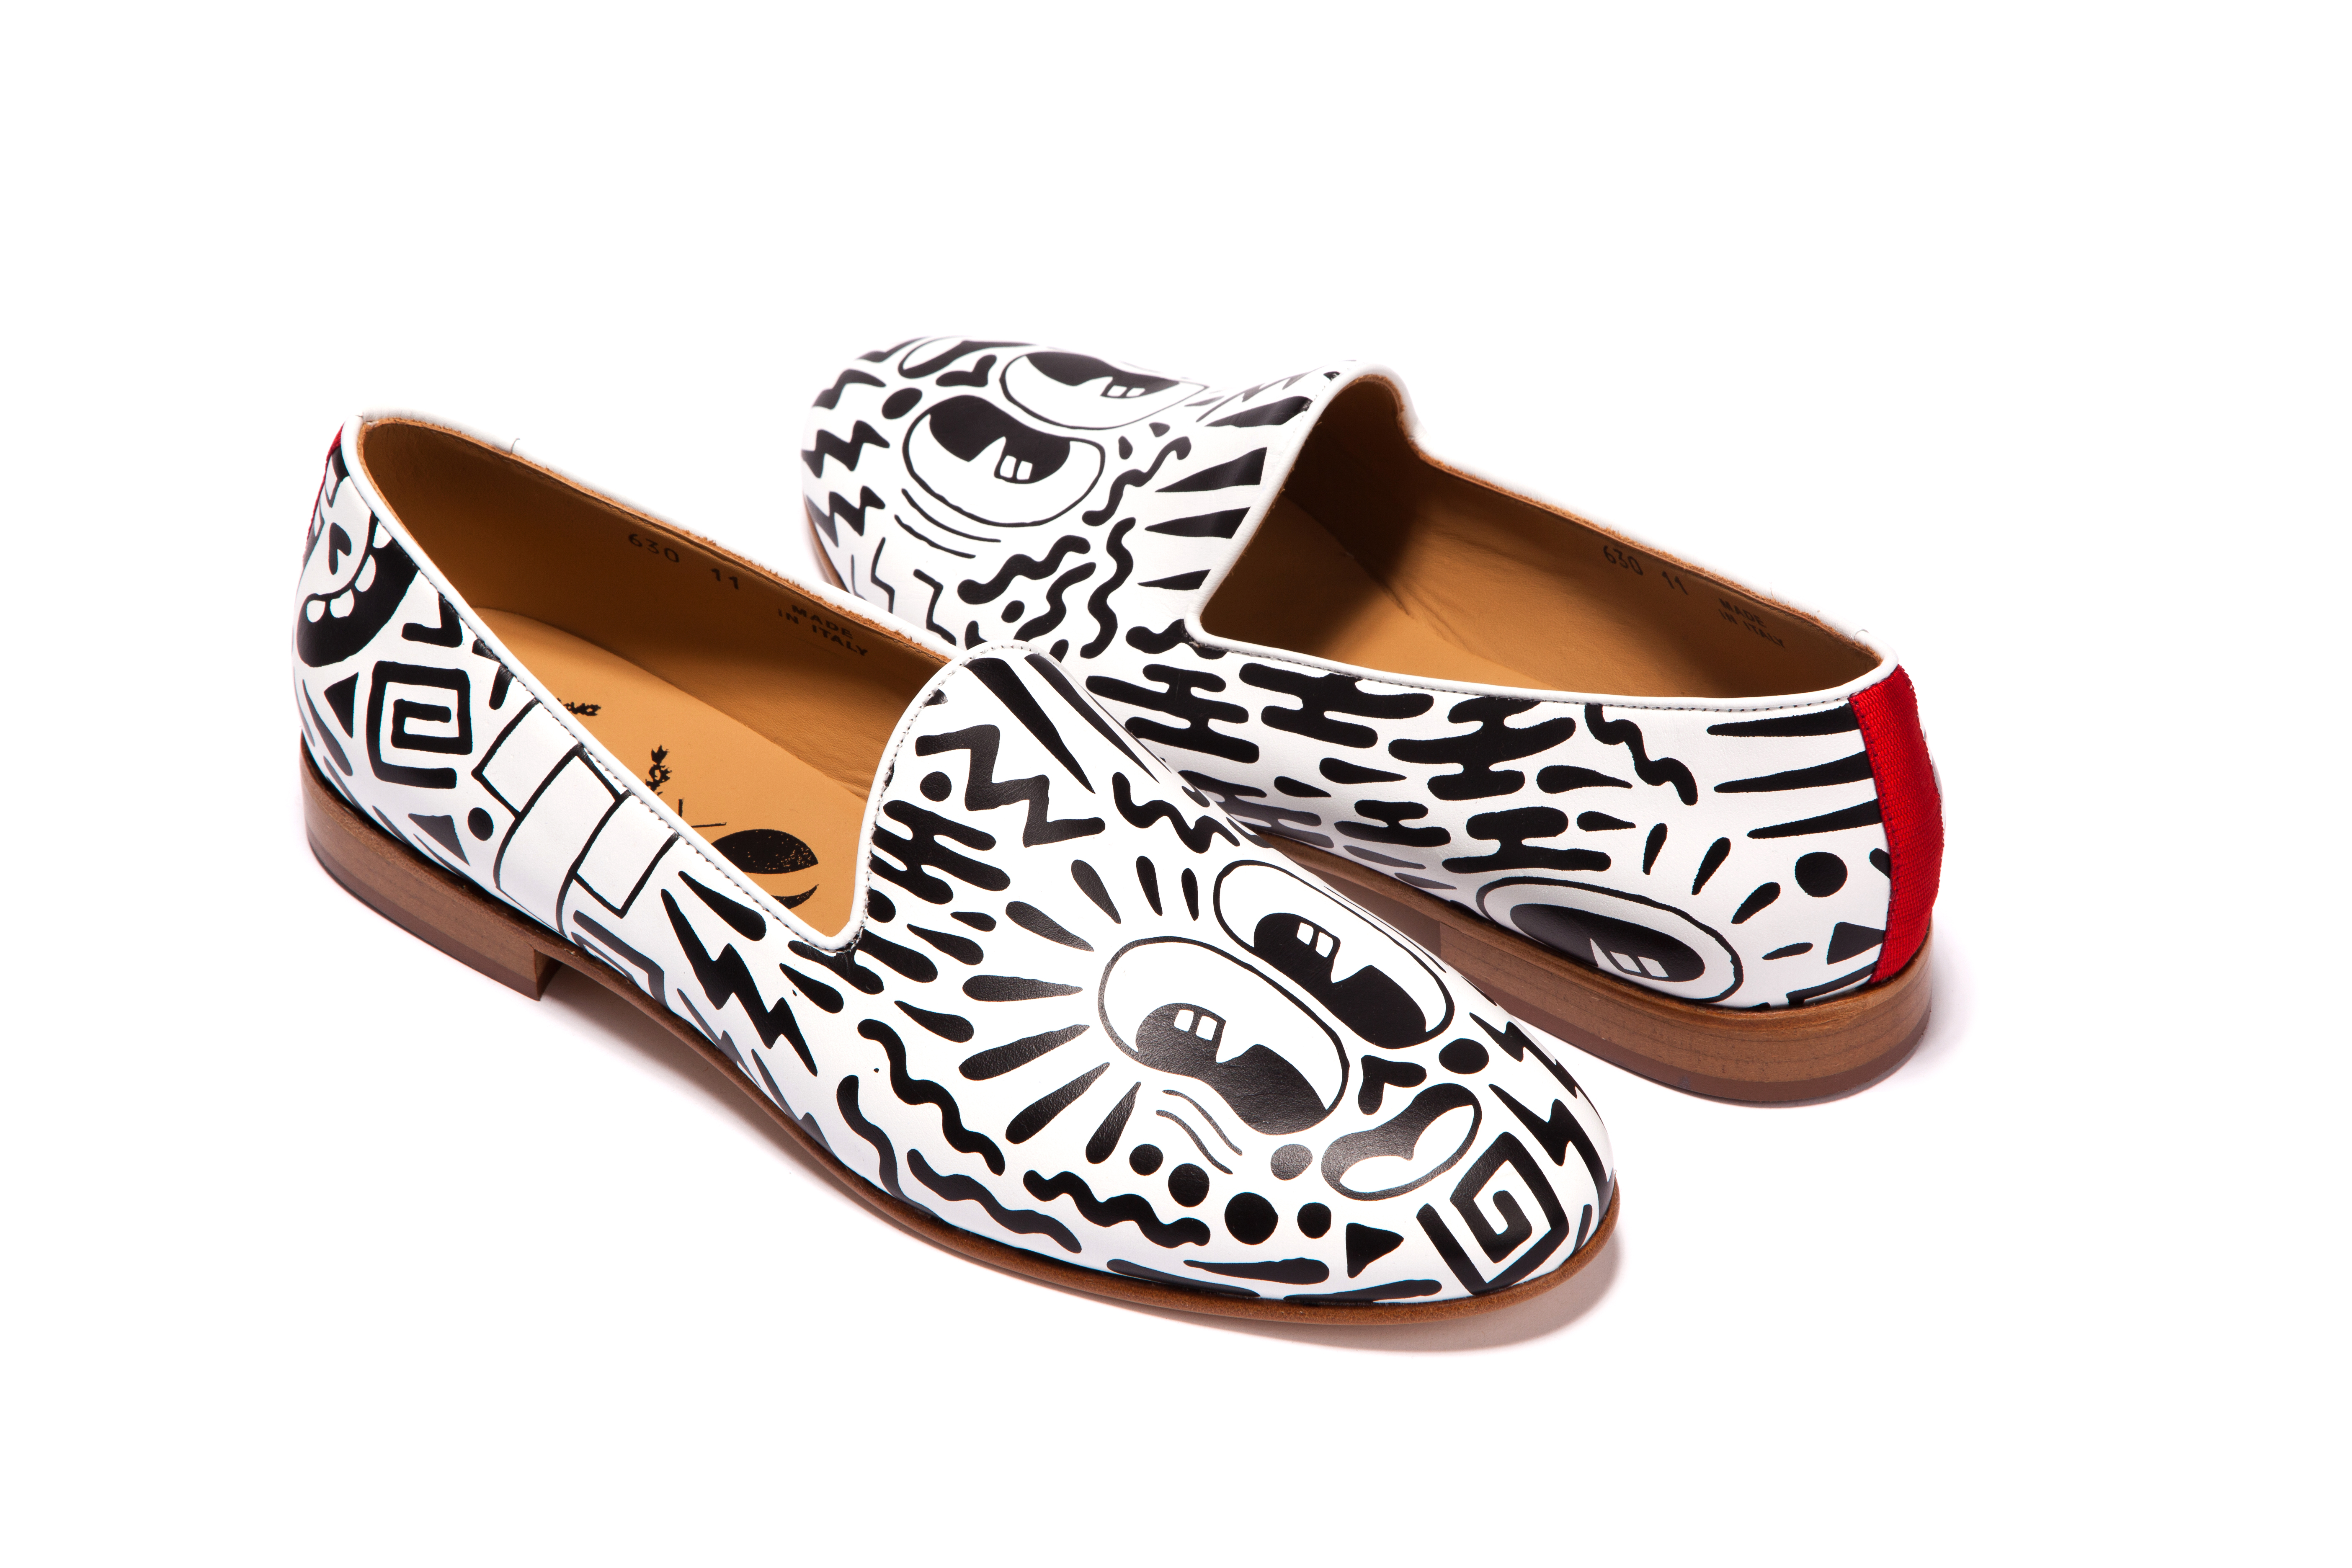 Del-toro-shoes-pepsi-live-for-now-capsule-collection